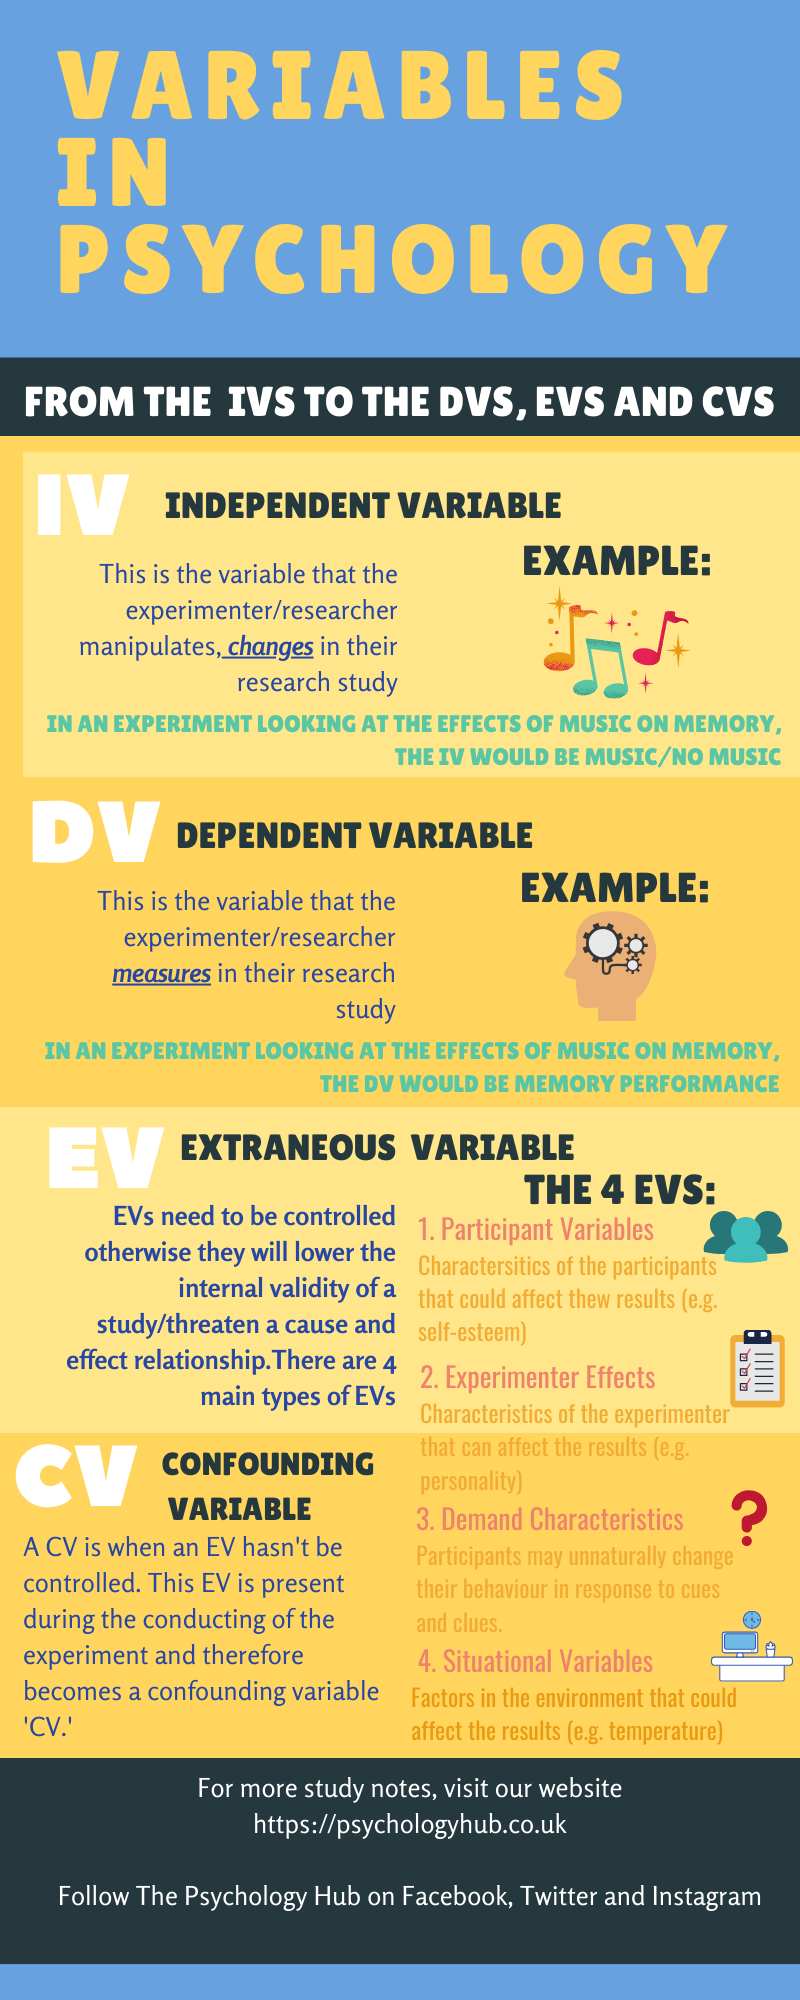 An infographic summarising the key information about variables. Image displays a definition of the independent, dependent, extraneous and confounding variables.